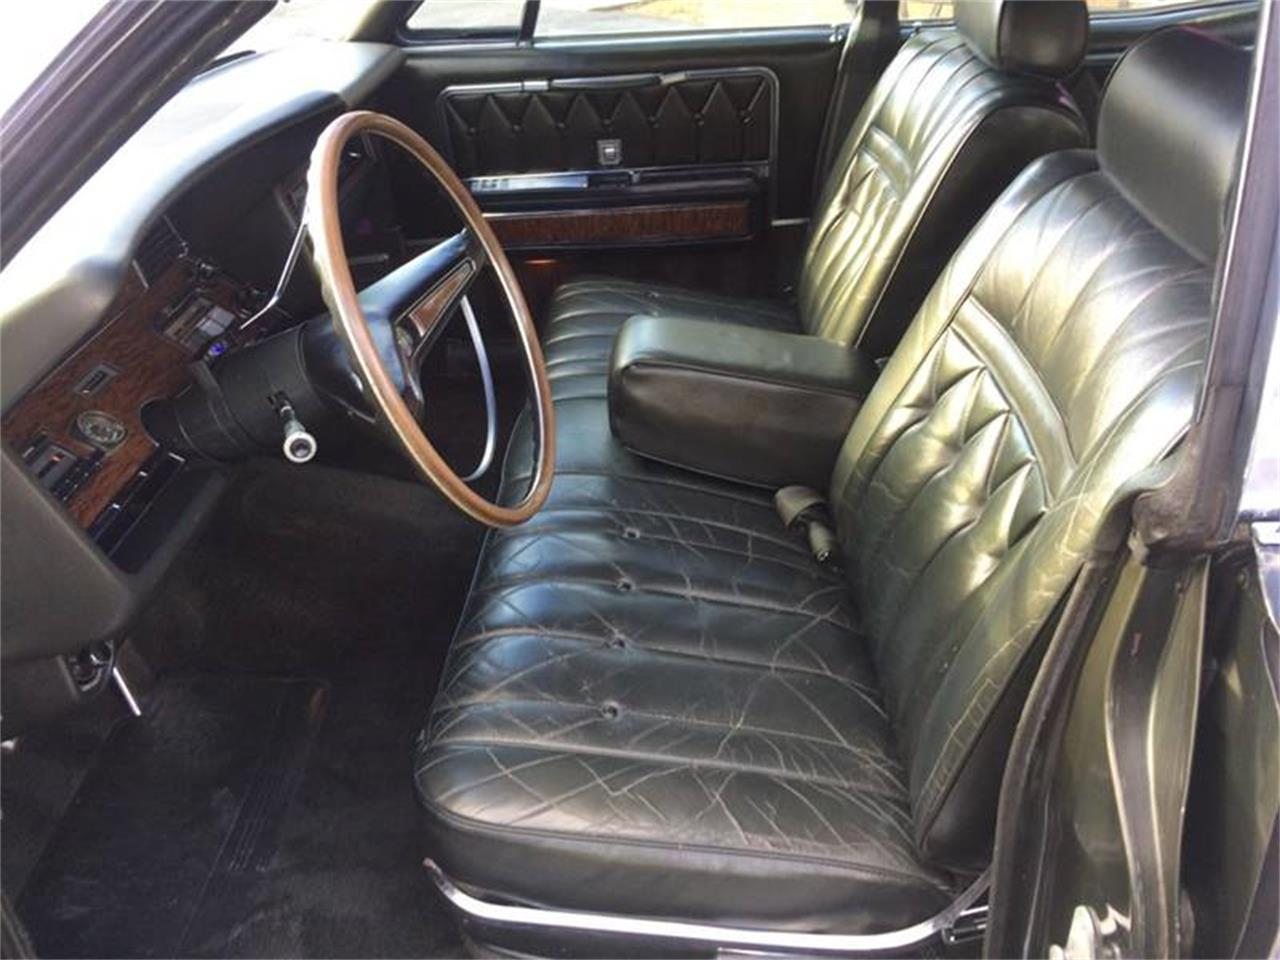 1969 Lincoln Continental for sale in Vestal, NY – photo 11